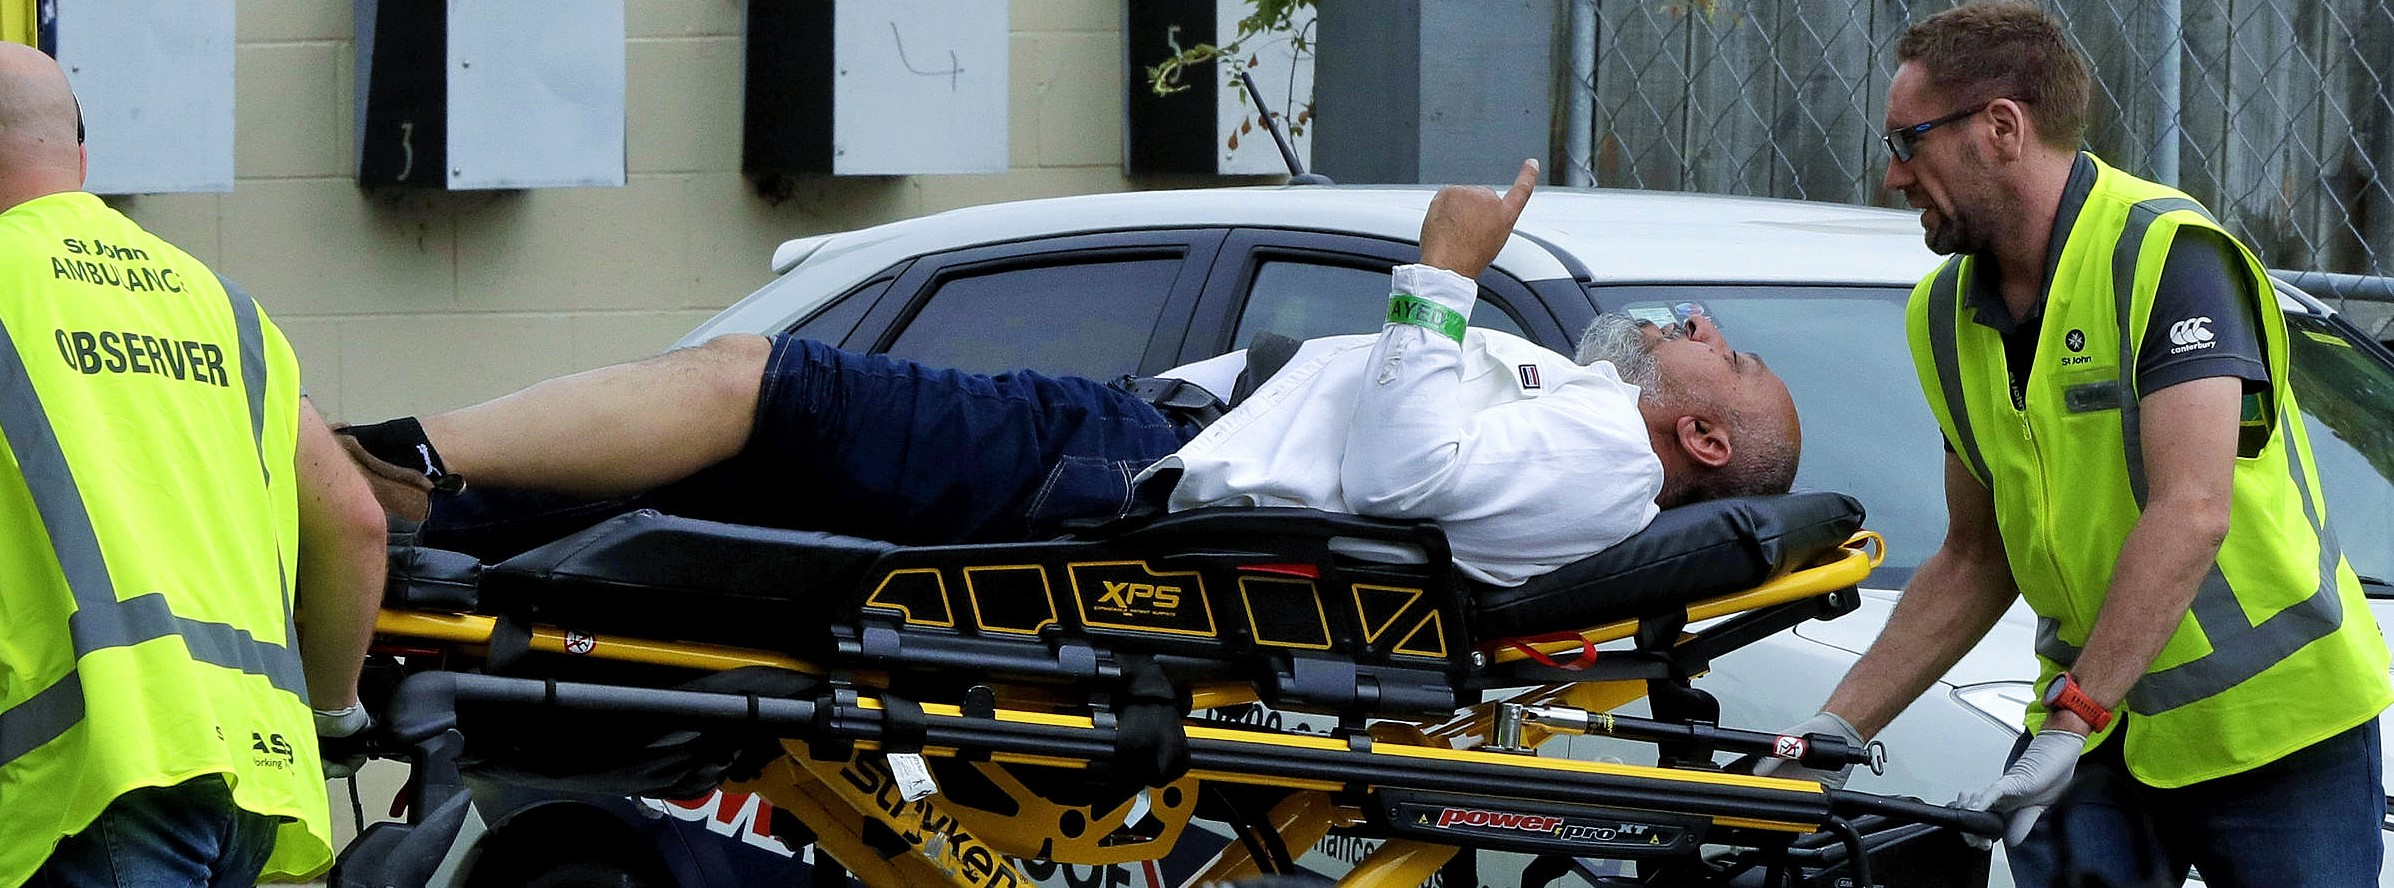 Ambulance staff take a man from outside a mosque in central Christchurch, New Zealand on Friday. Four people are in custody after shootings at two mosques there.